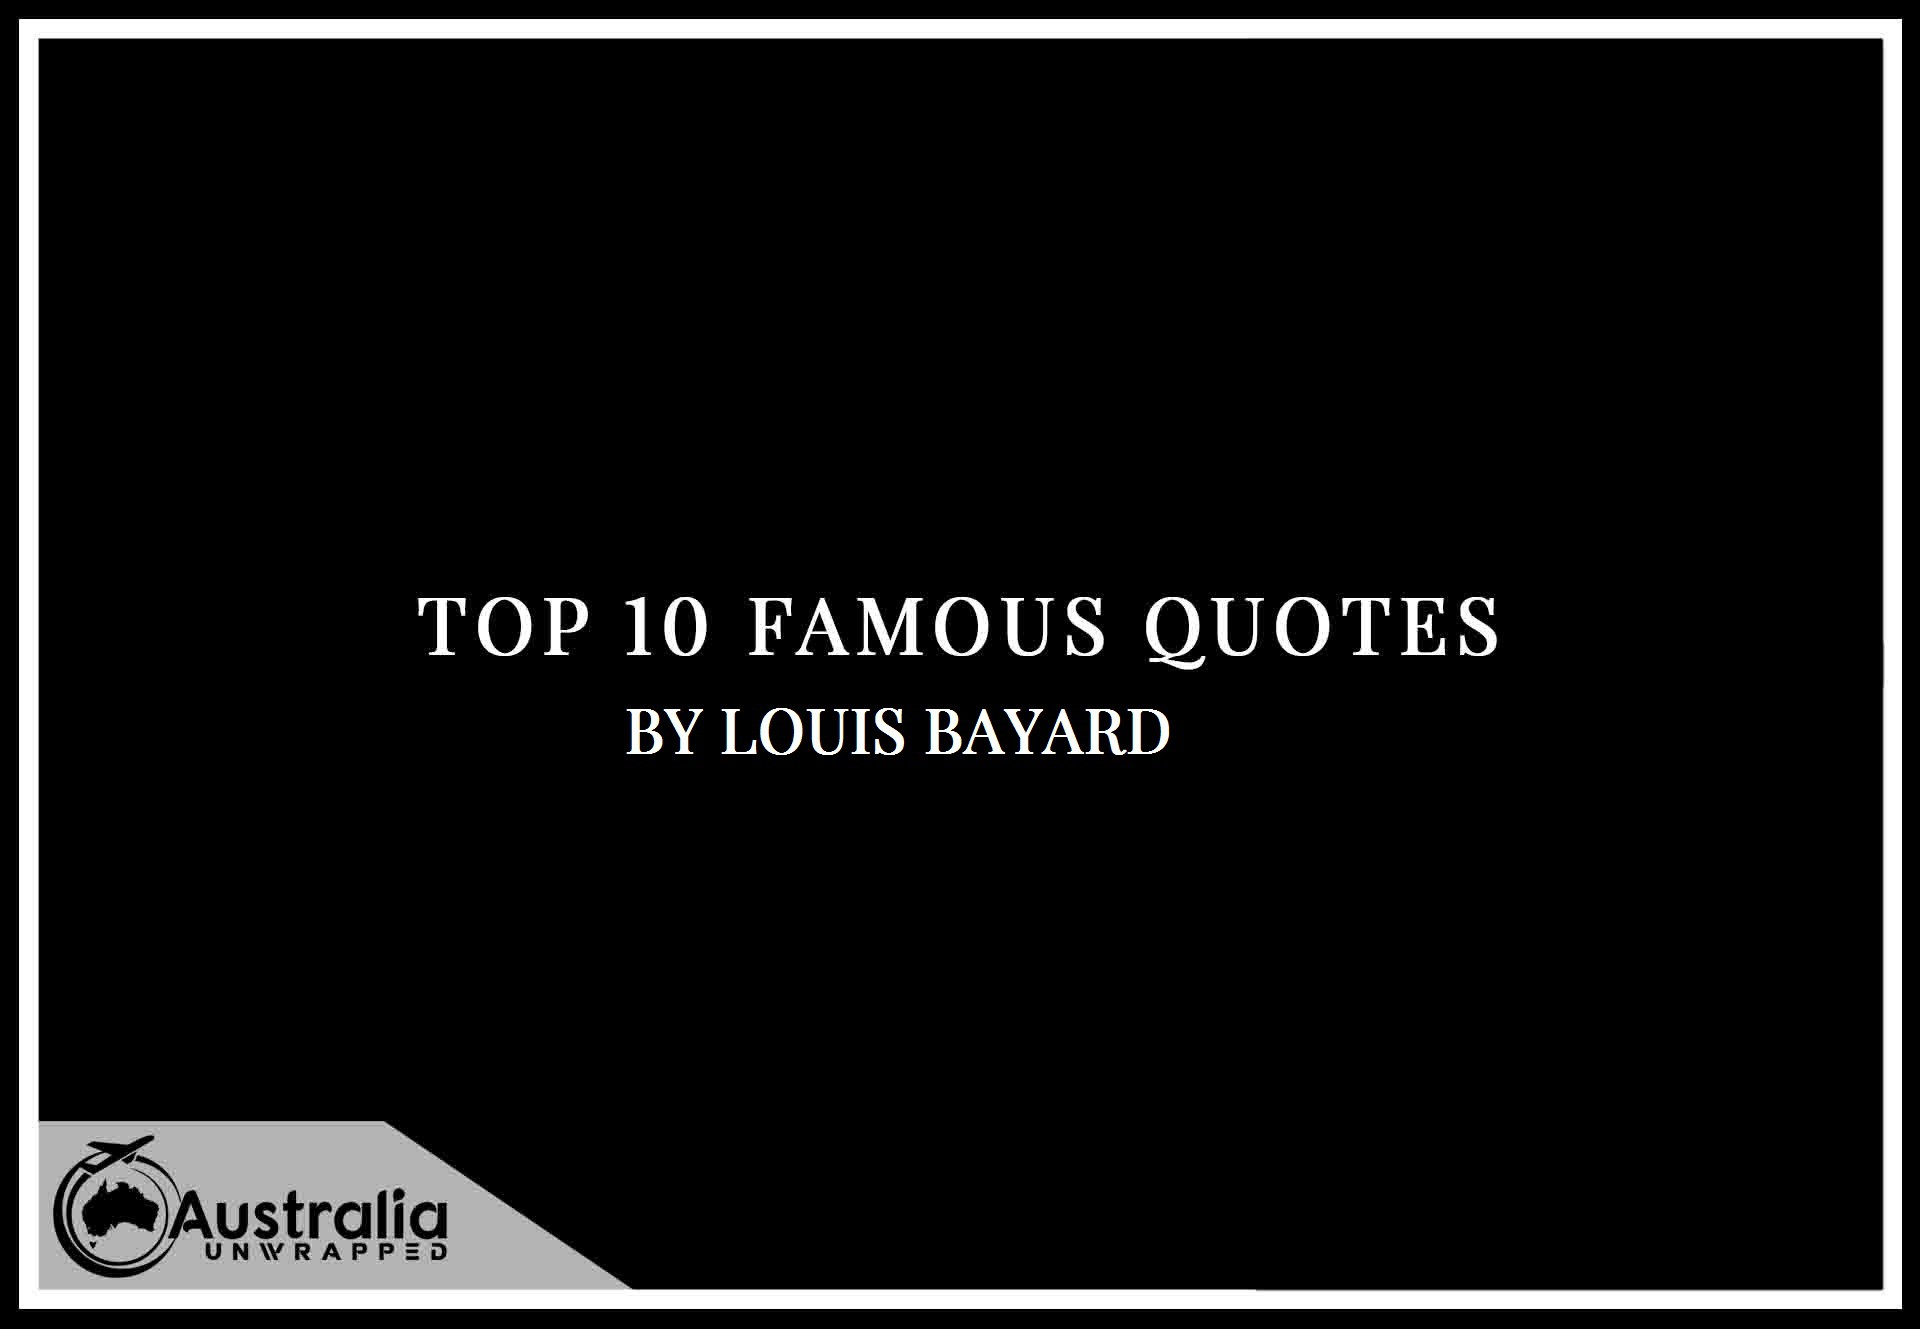 Louis Bayard's Top 10 Popular and Famous Quotes